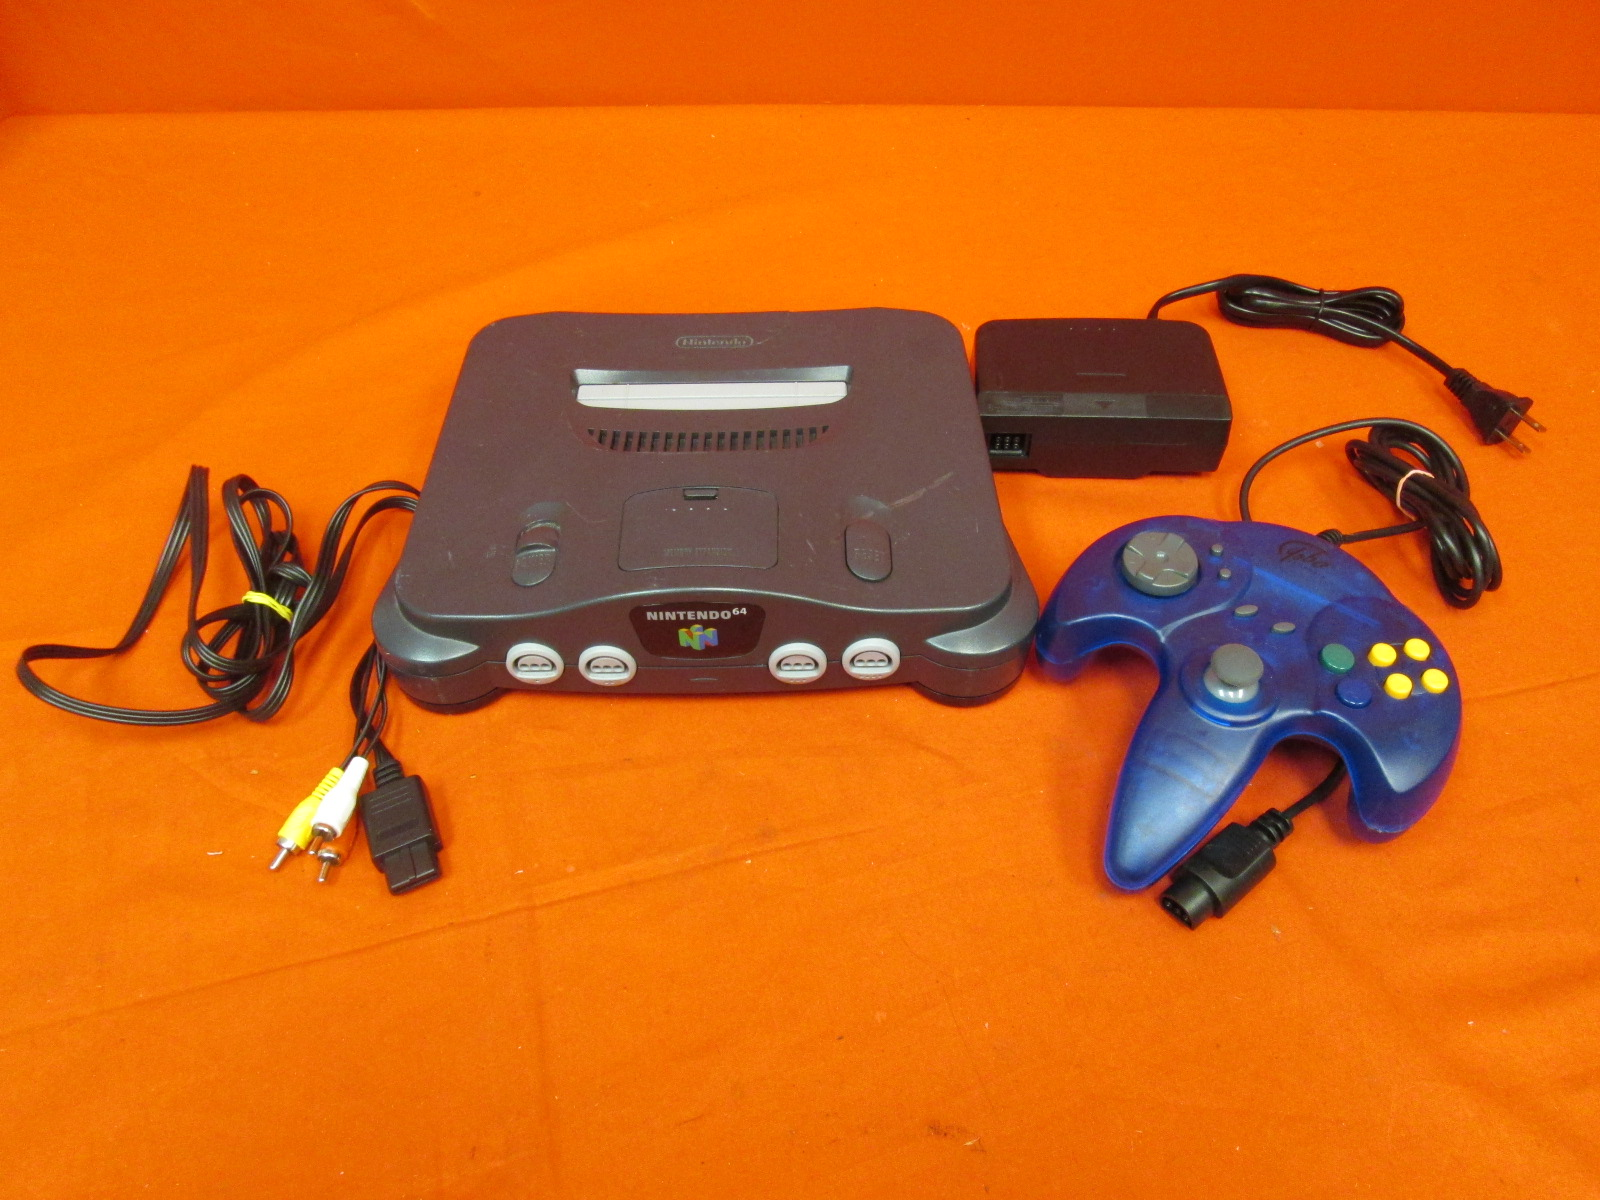 Nintendo N64 Gaming Console